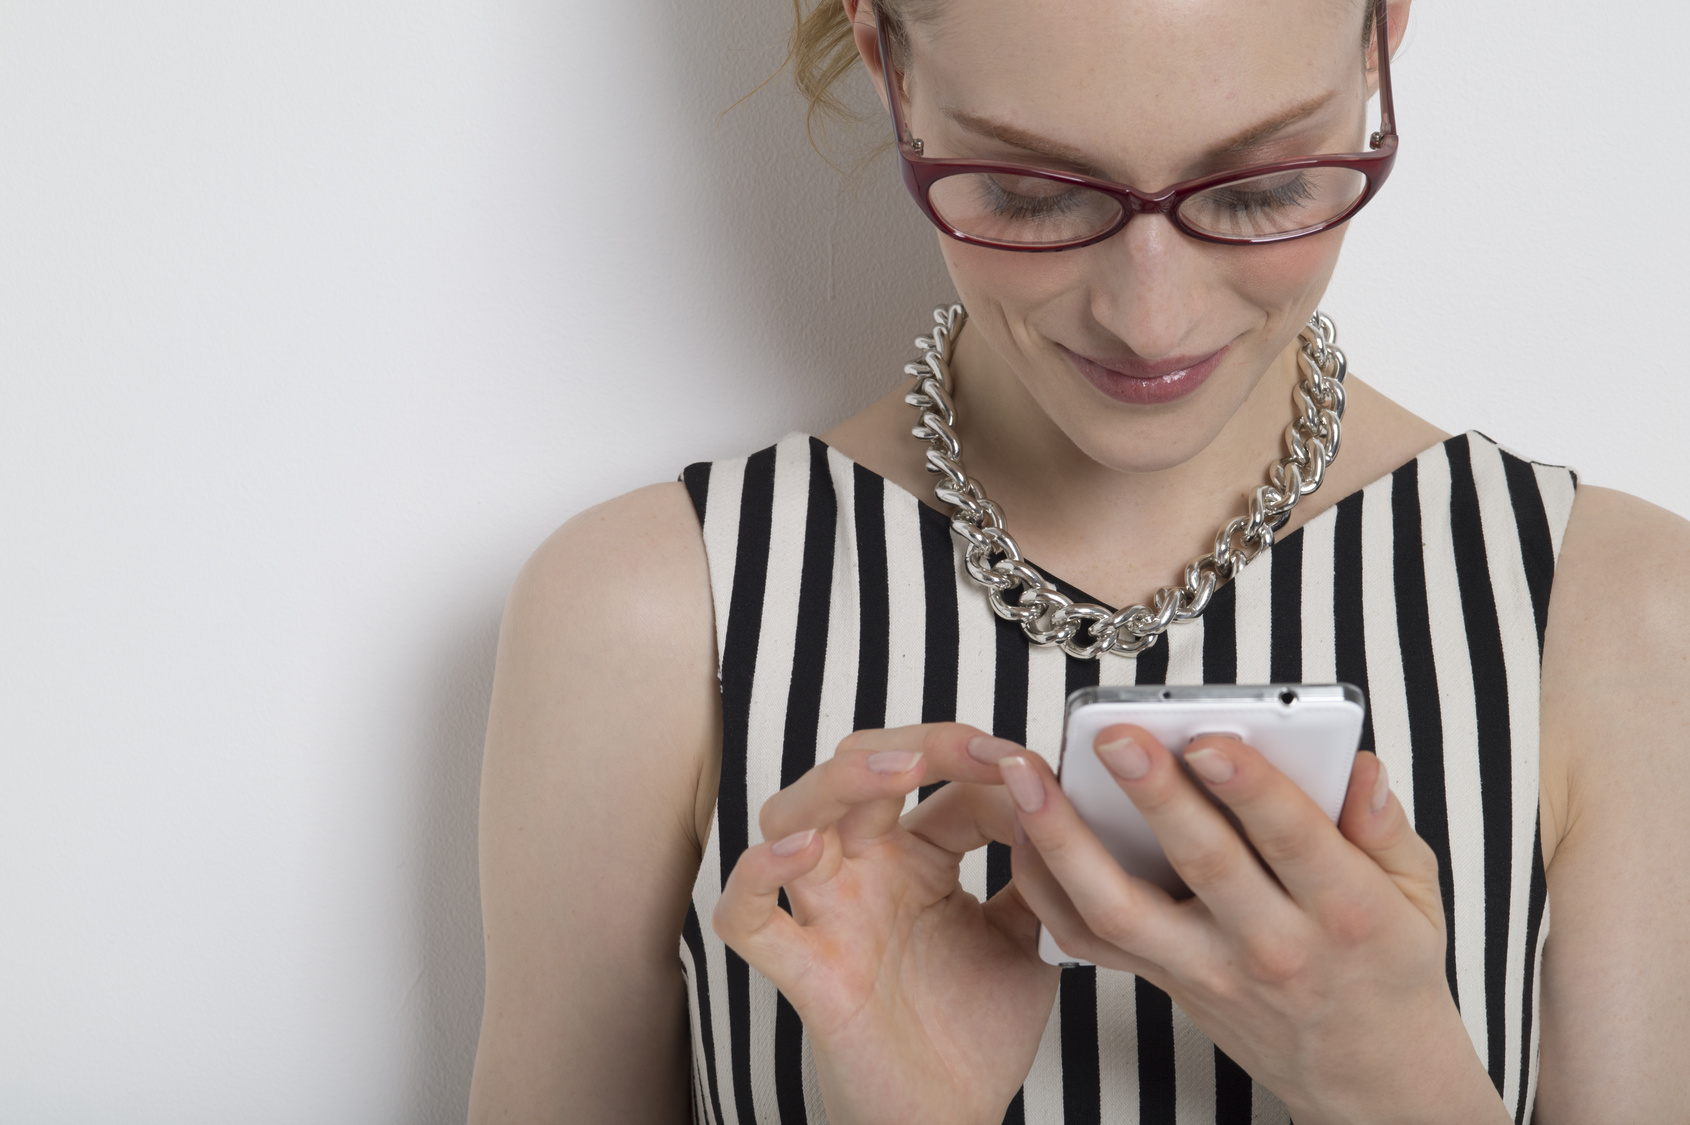 Woman looking at the mobile phone with a smile